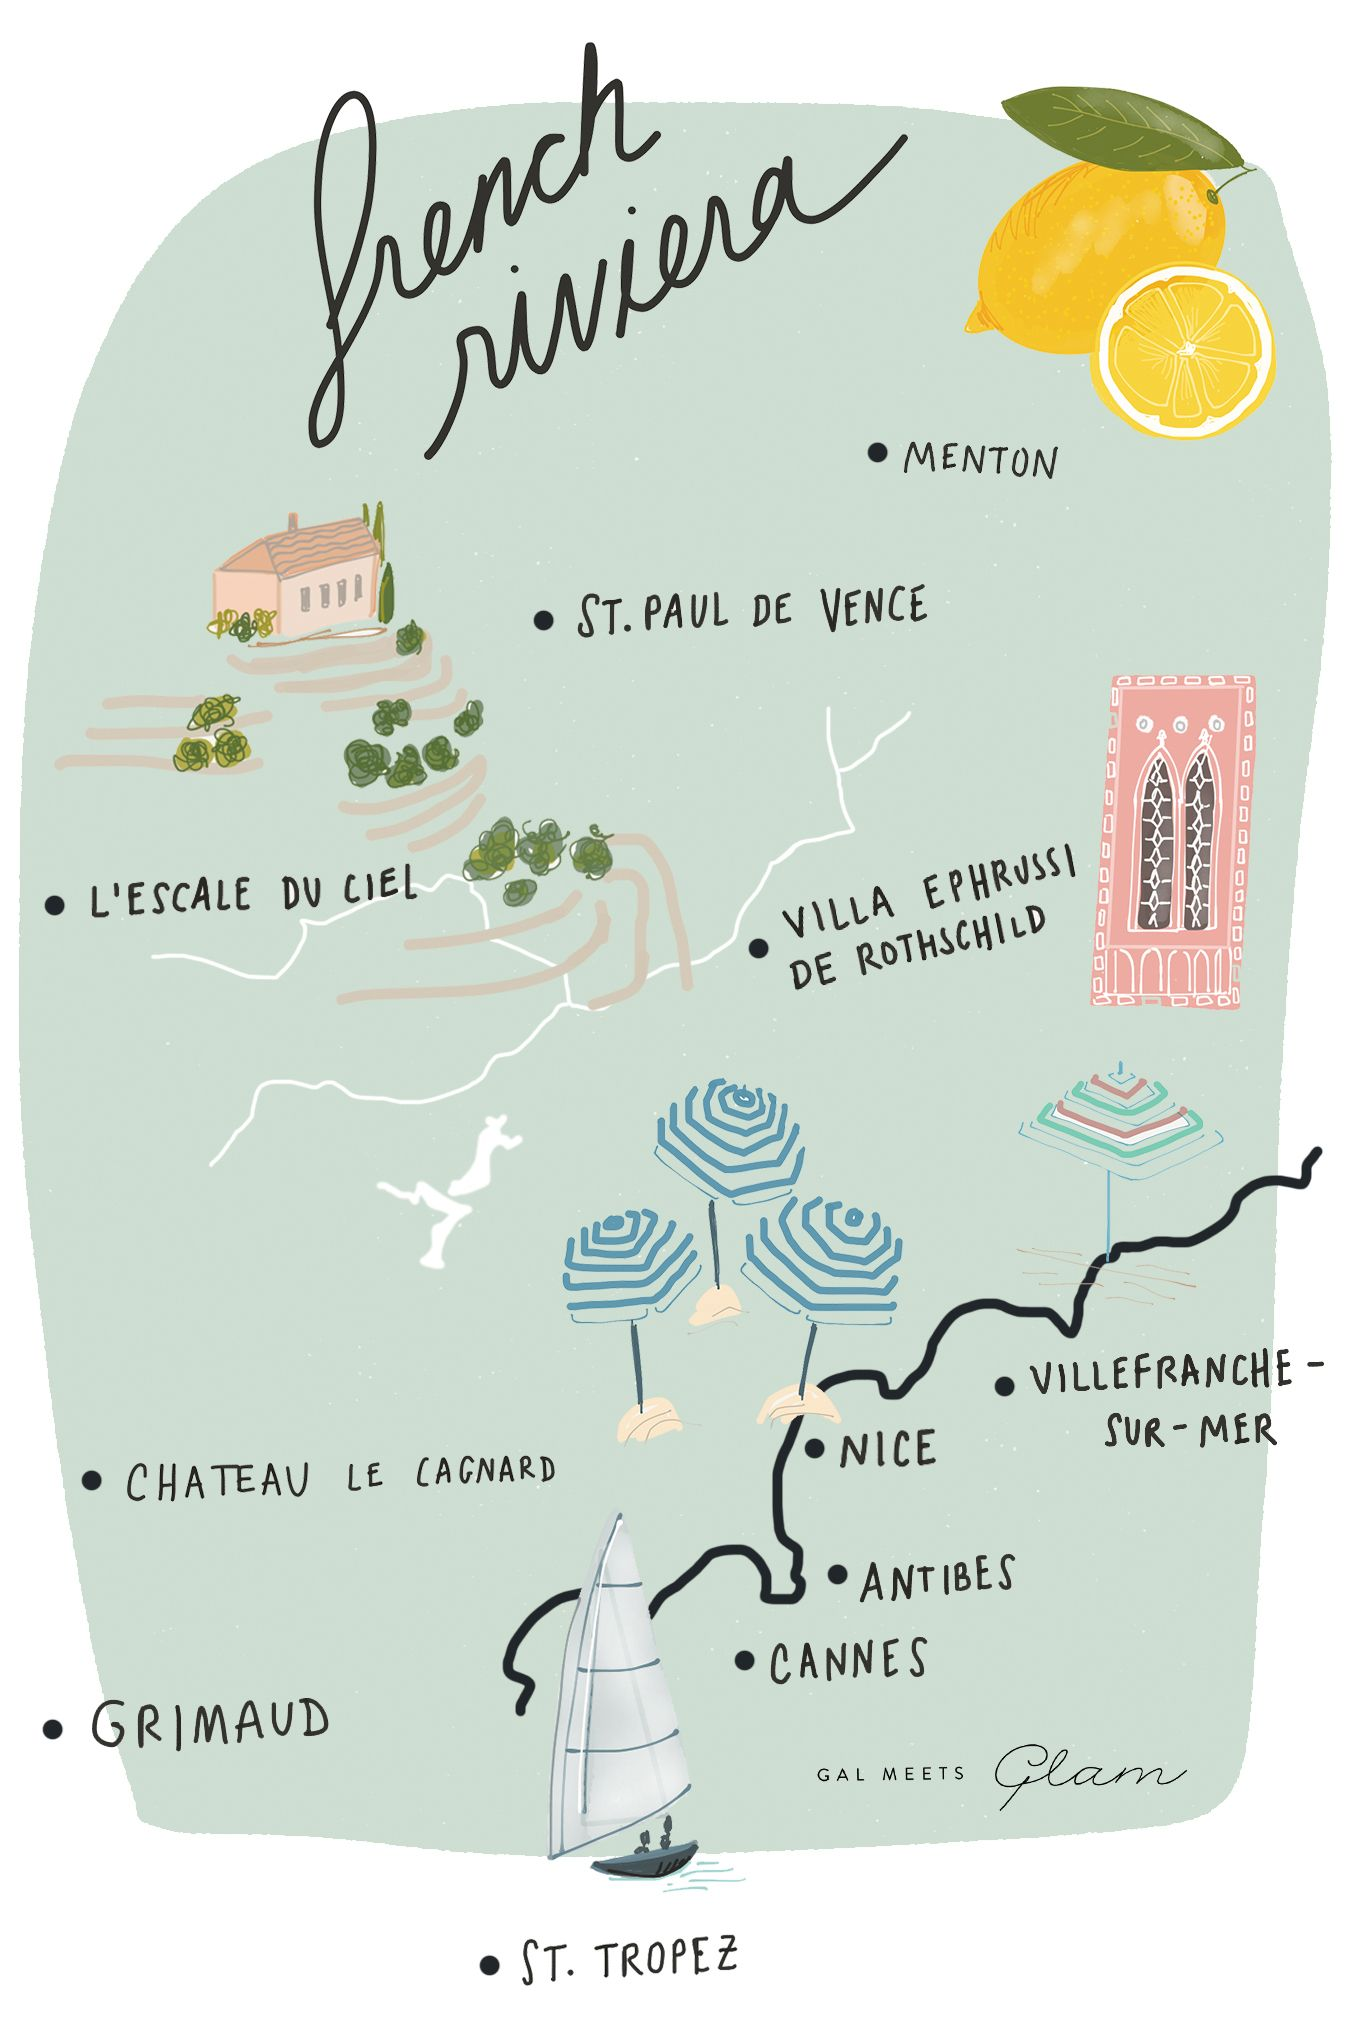 Provence French Riviera Itinerary Gal meets glam French riviera